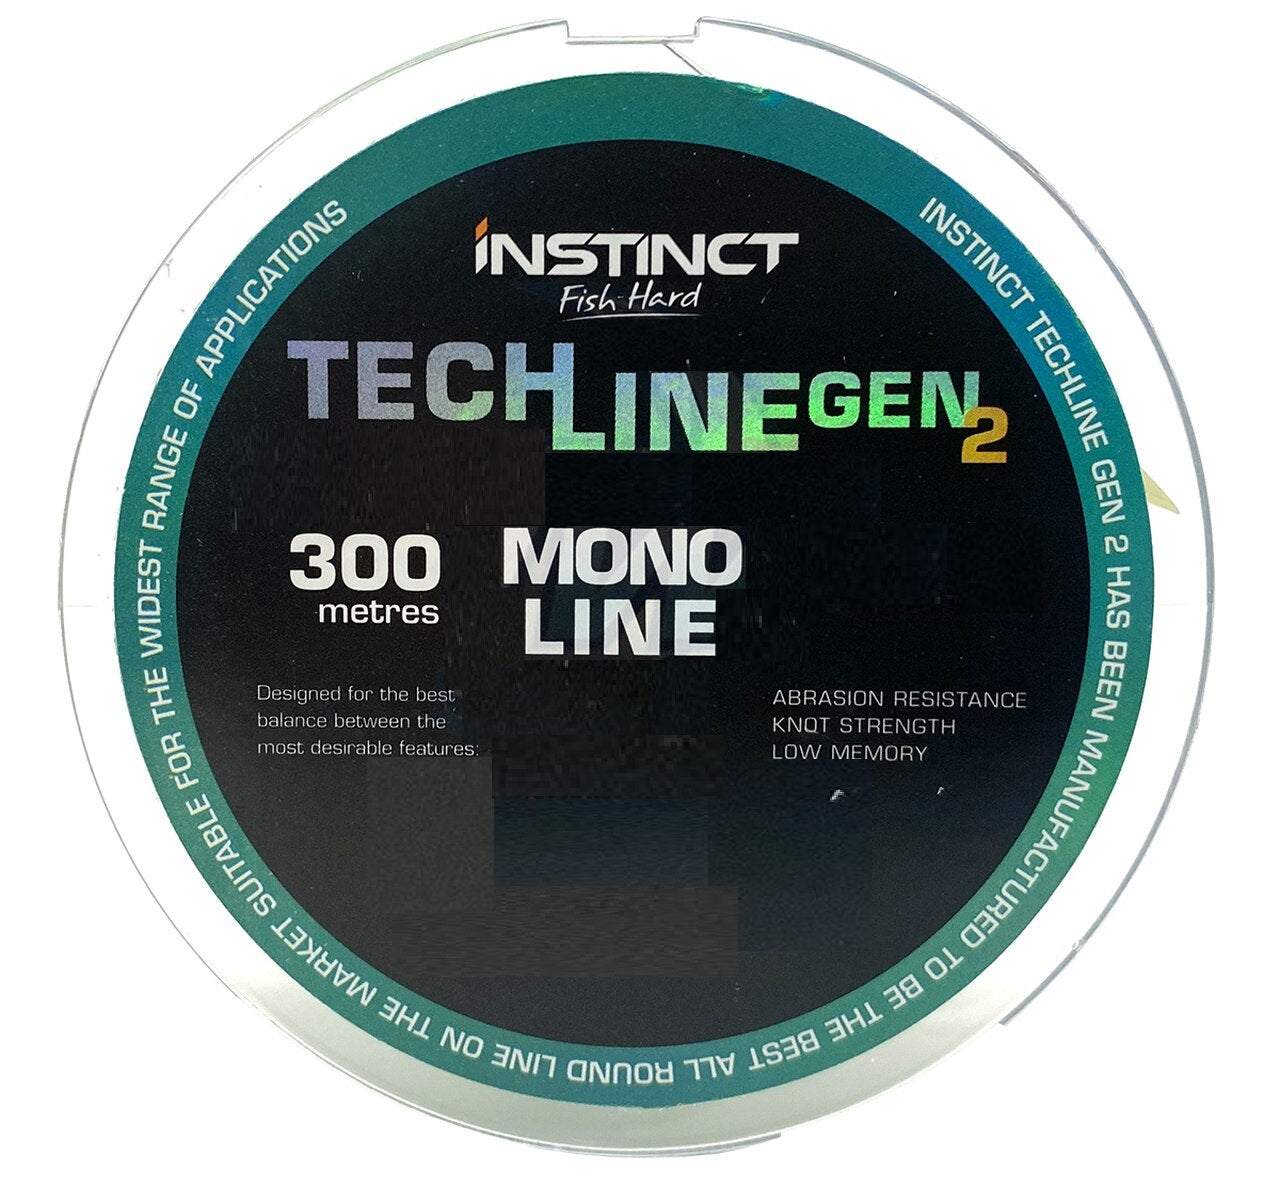 Instinct IN110 Techline Gen 2 Monofilament Line